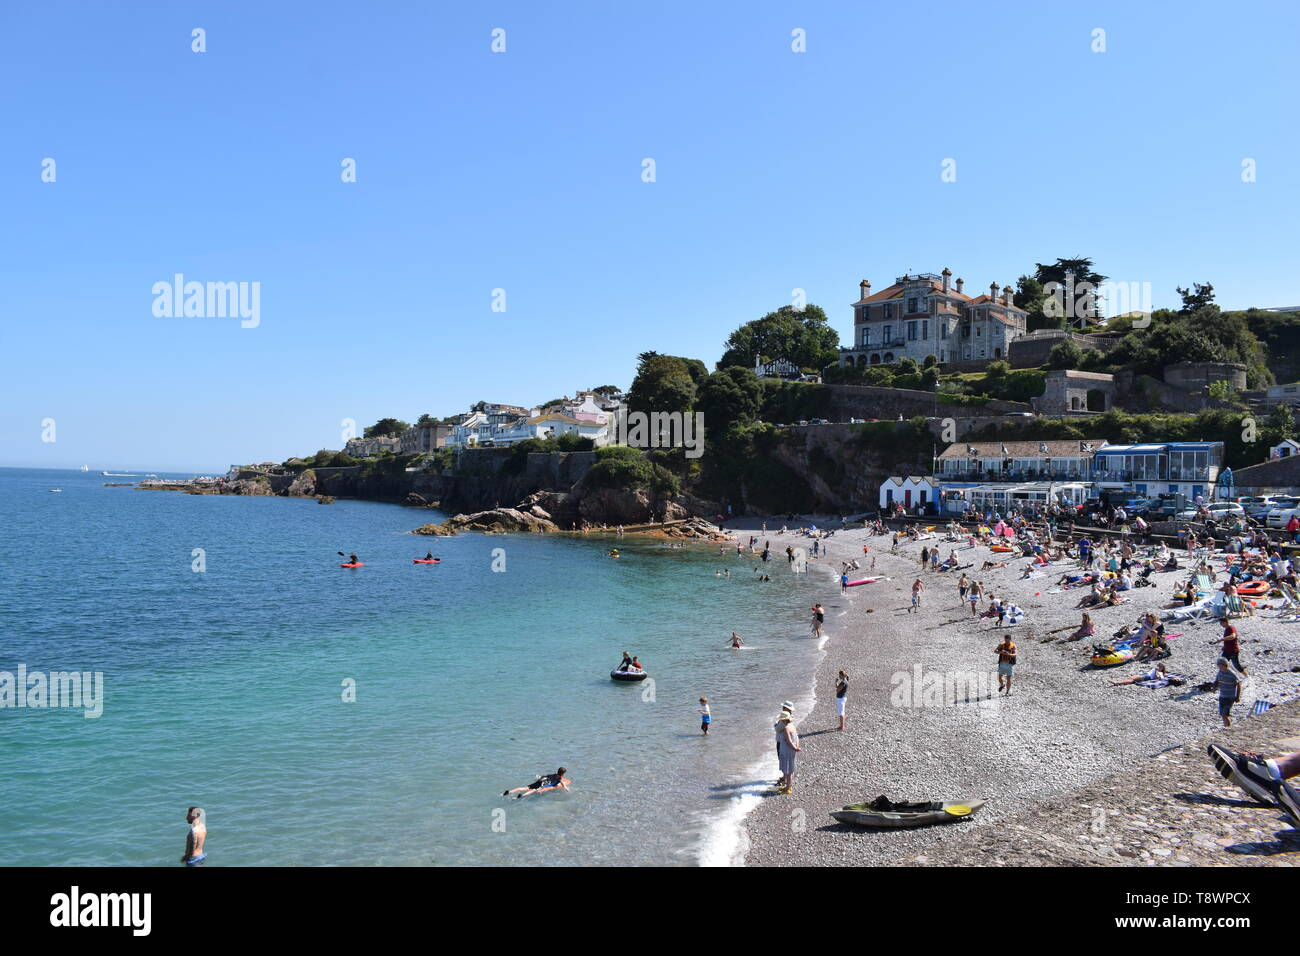 A beautiful summers day near the southern English town of Dawlish. - Stock Image